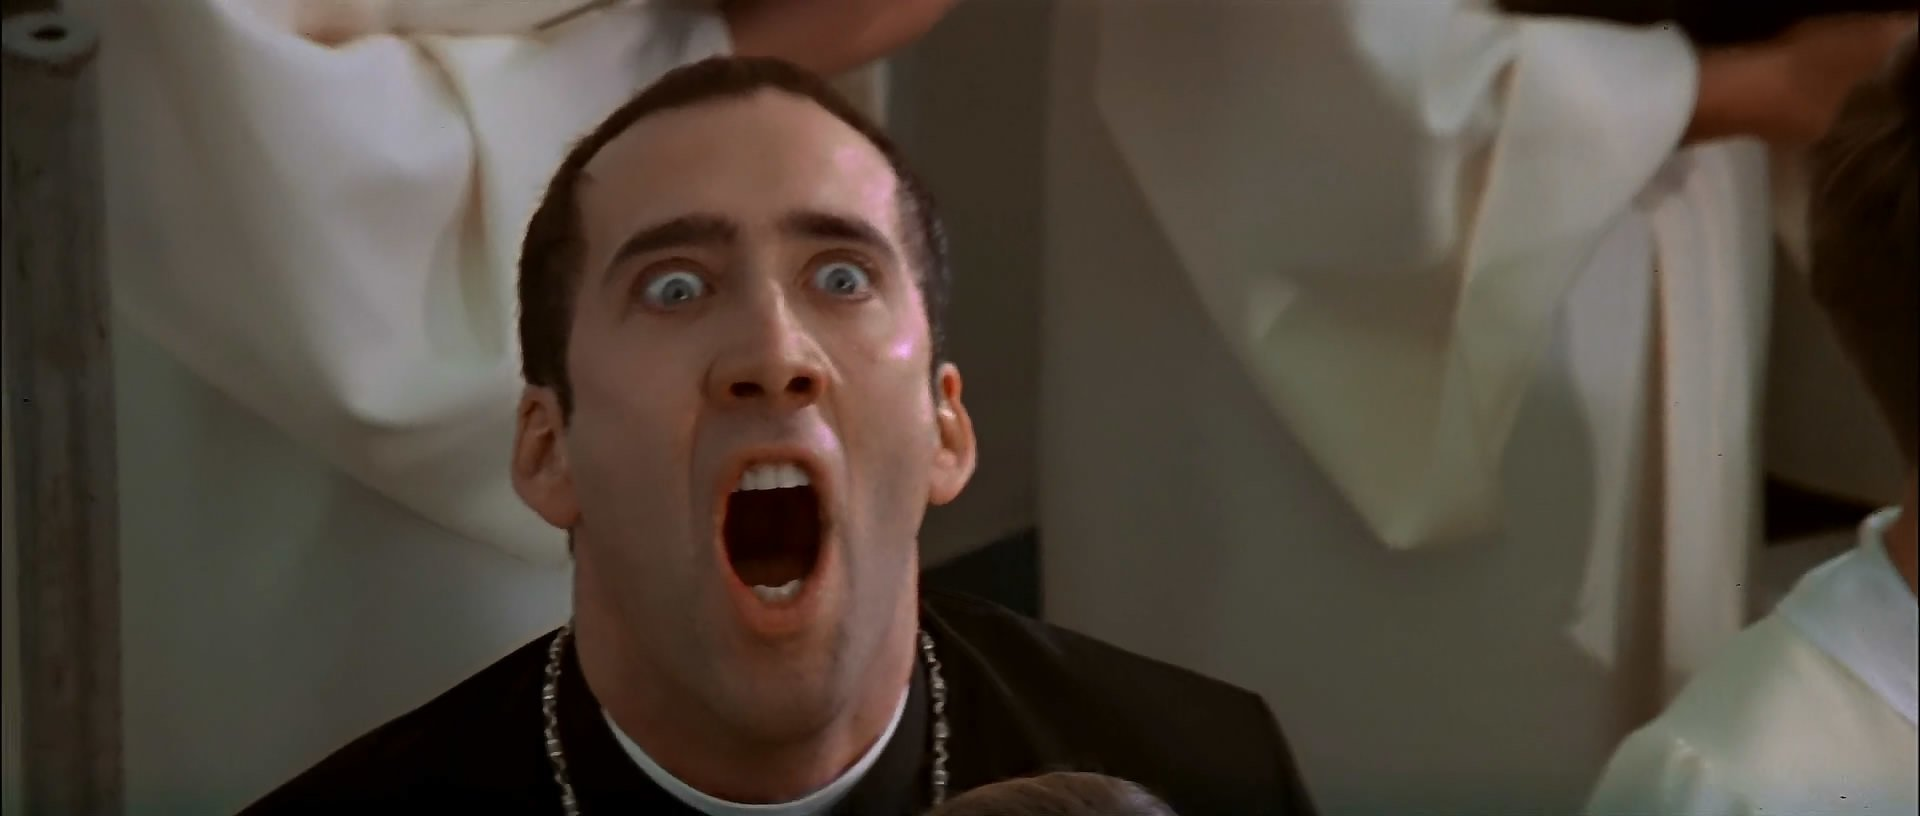 45 Nicolas Cage HD Wallpapers | Backgrounds - Wallpaper Abyss